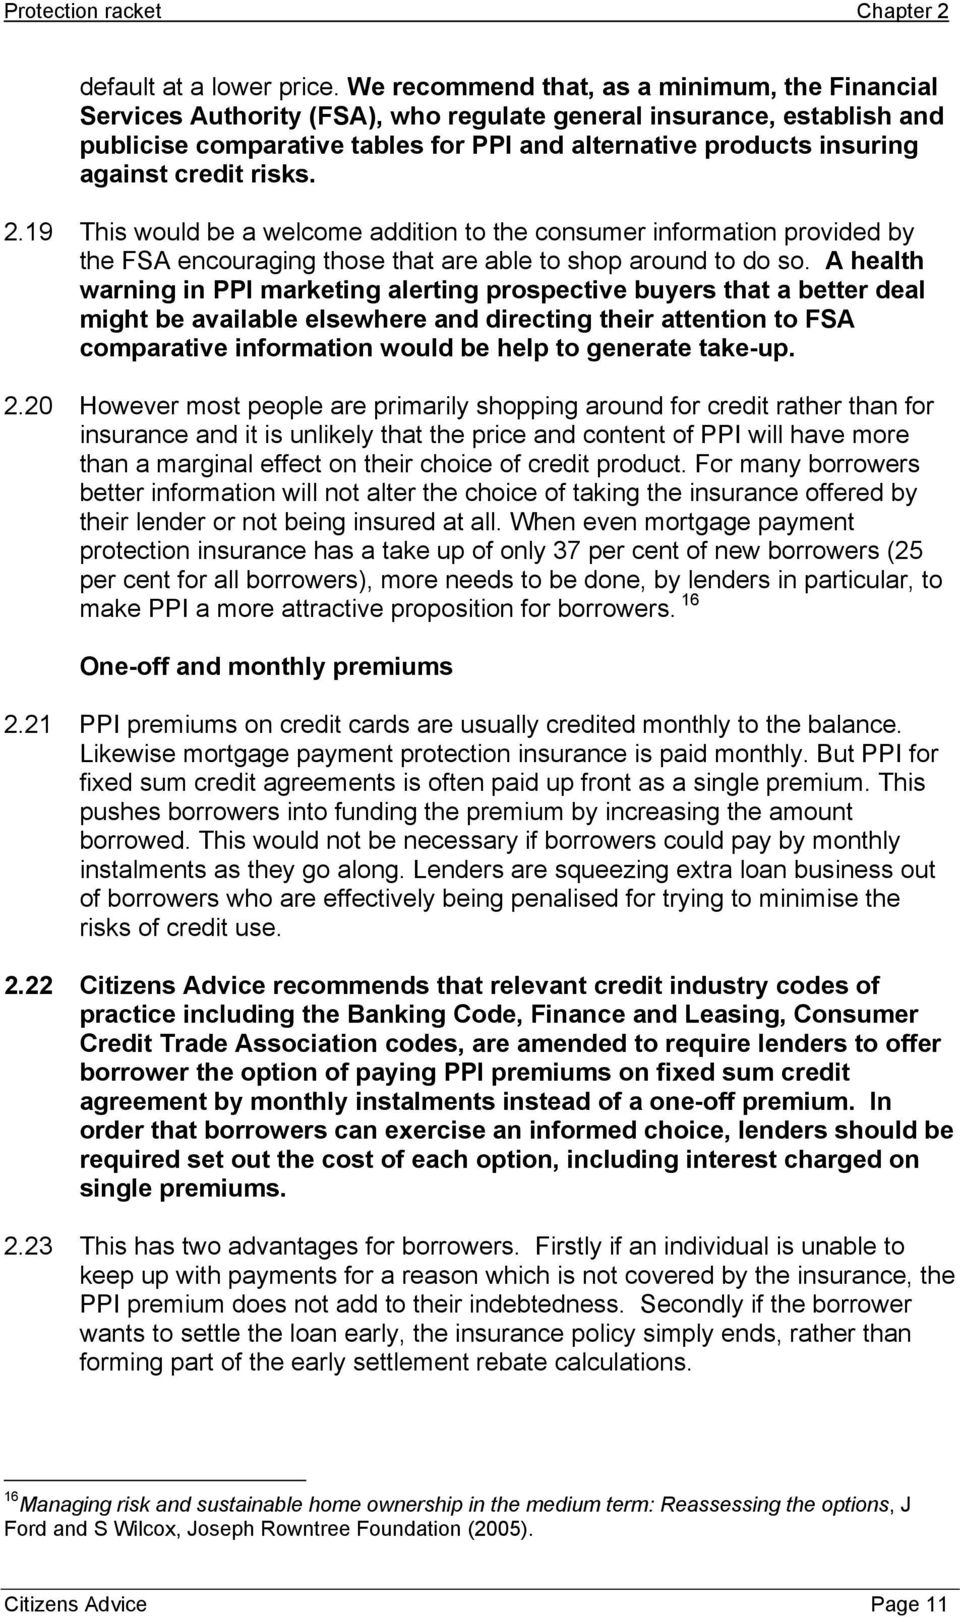 credit risks. 2.19 This would be a welcome addition to the consumer information provided by the FSA encouraging those that are able to shop around to do so.